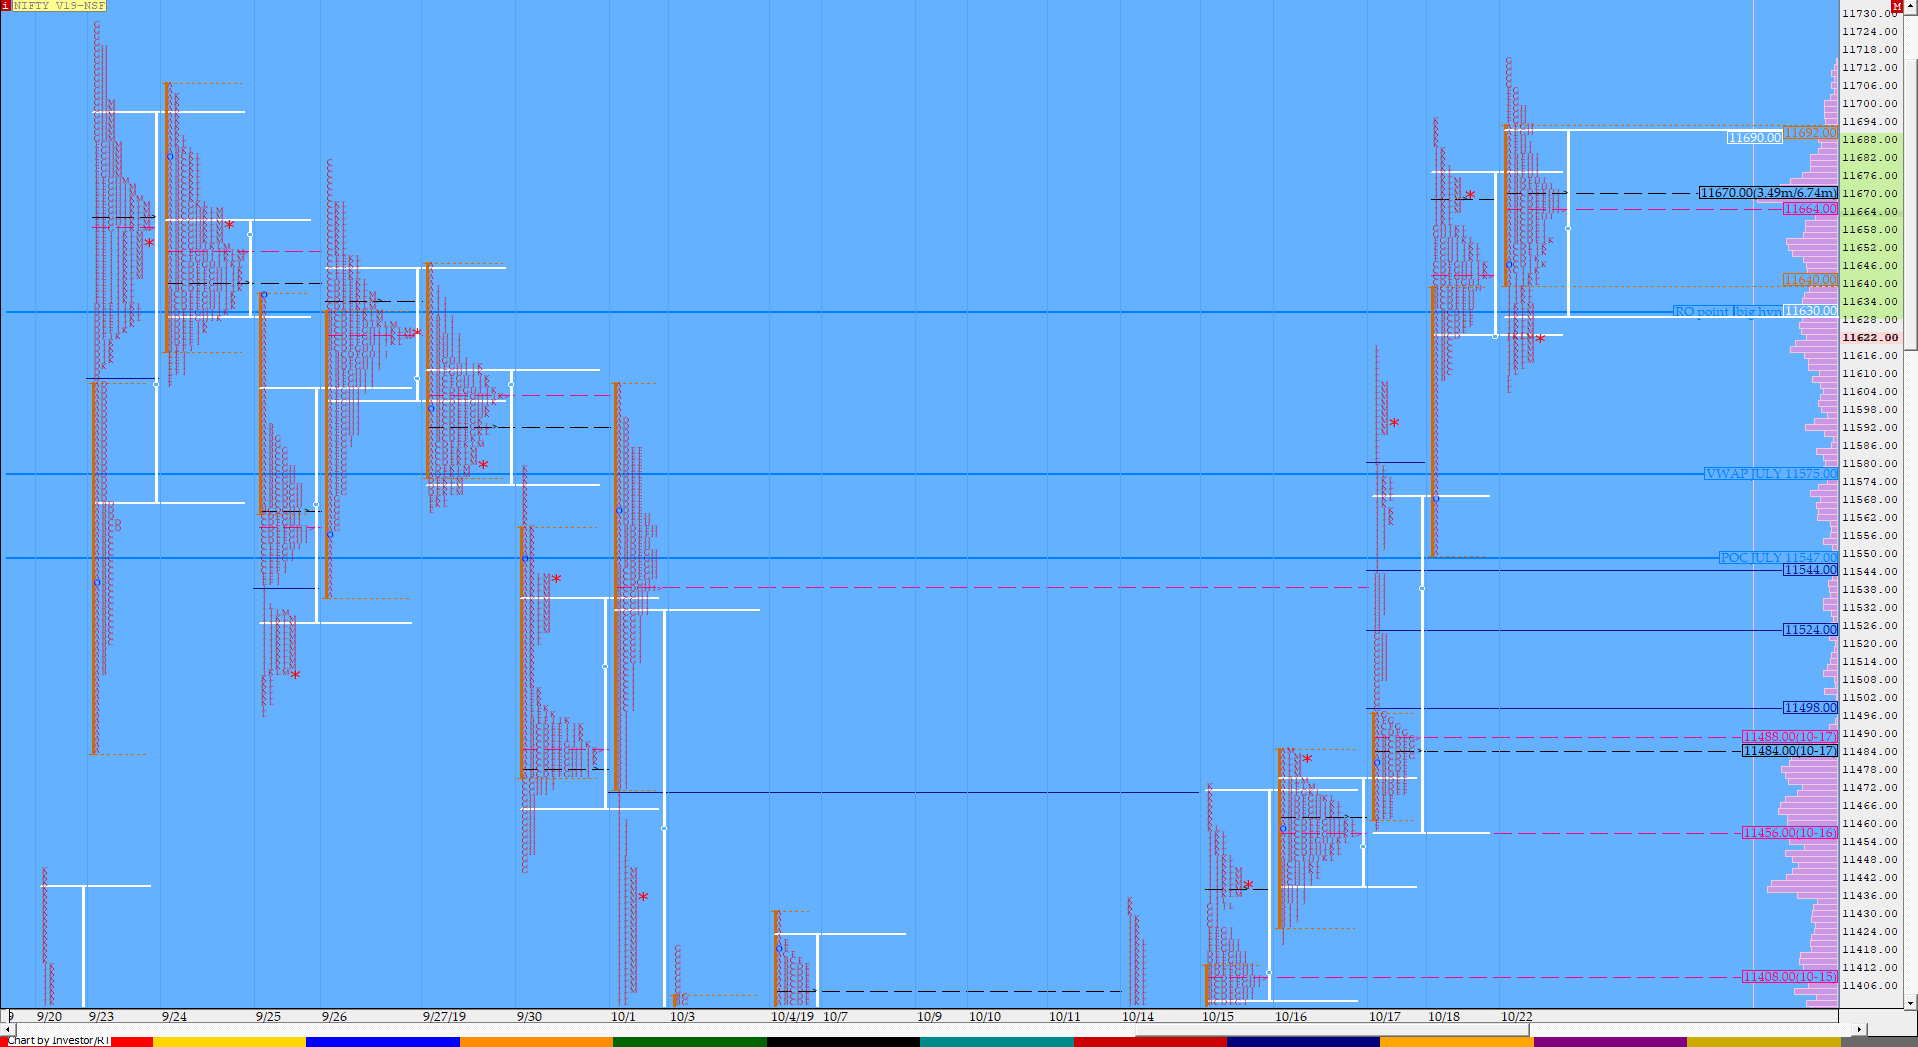 Market Profile Analysis dated 22nd October 2